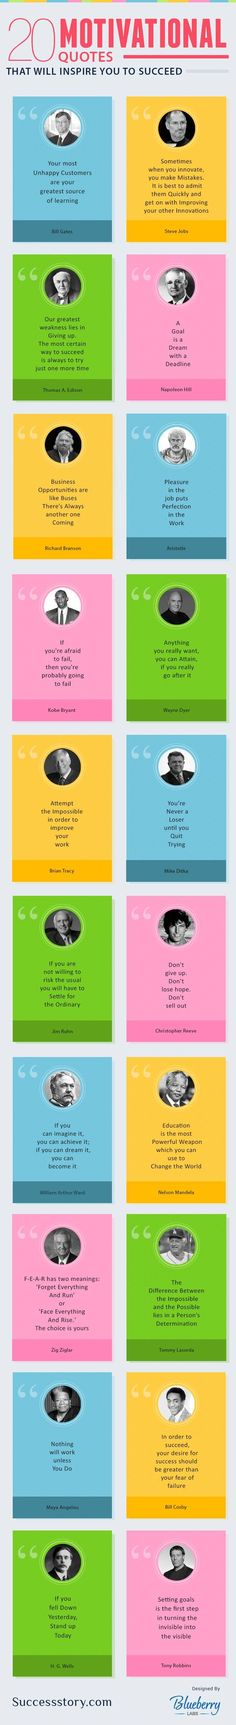 20 Motivational Quotes from Successful Entrepreneurs #infographic #Business #Motivation #Quotes #Entrepreneurs